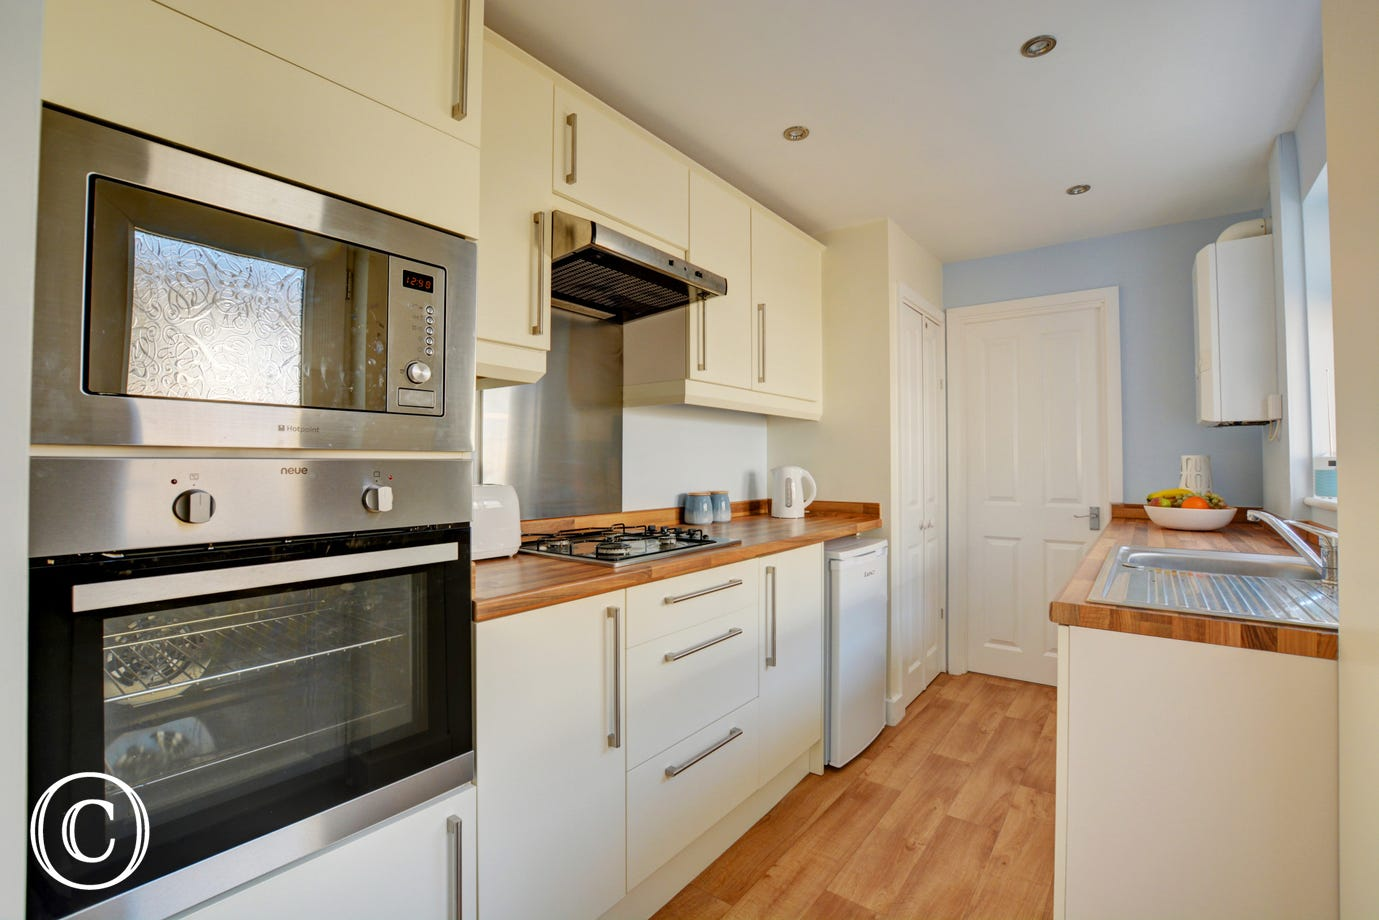 Kitchen with built-in electric oven, gas hob, fridge with icebox, combination microwave and washing machine